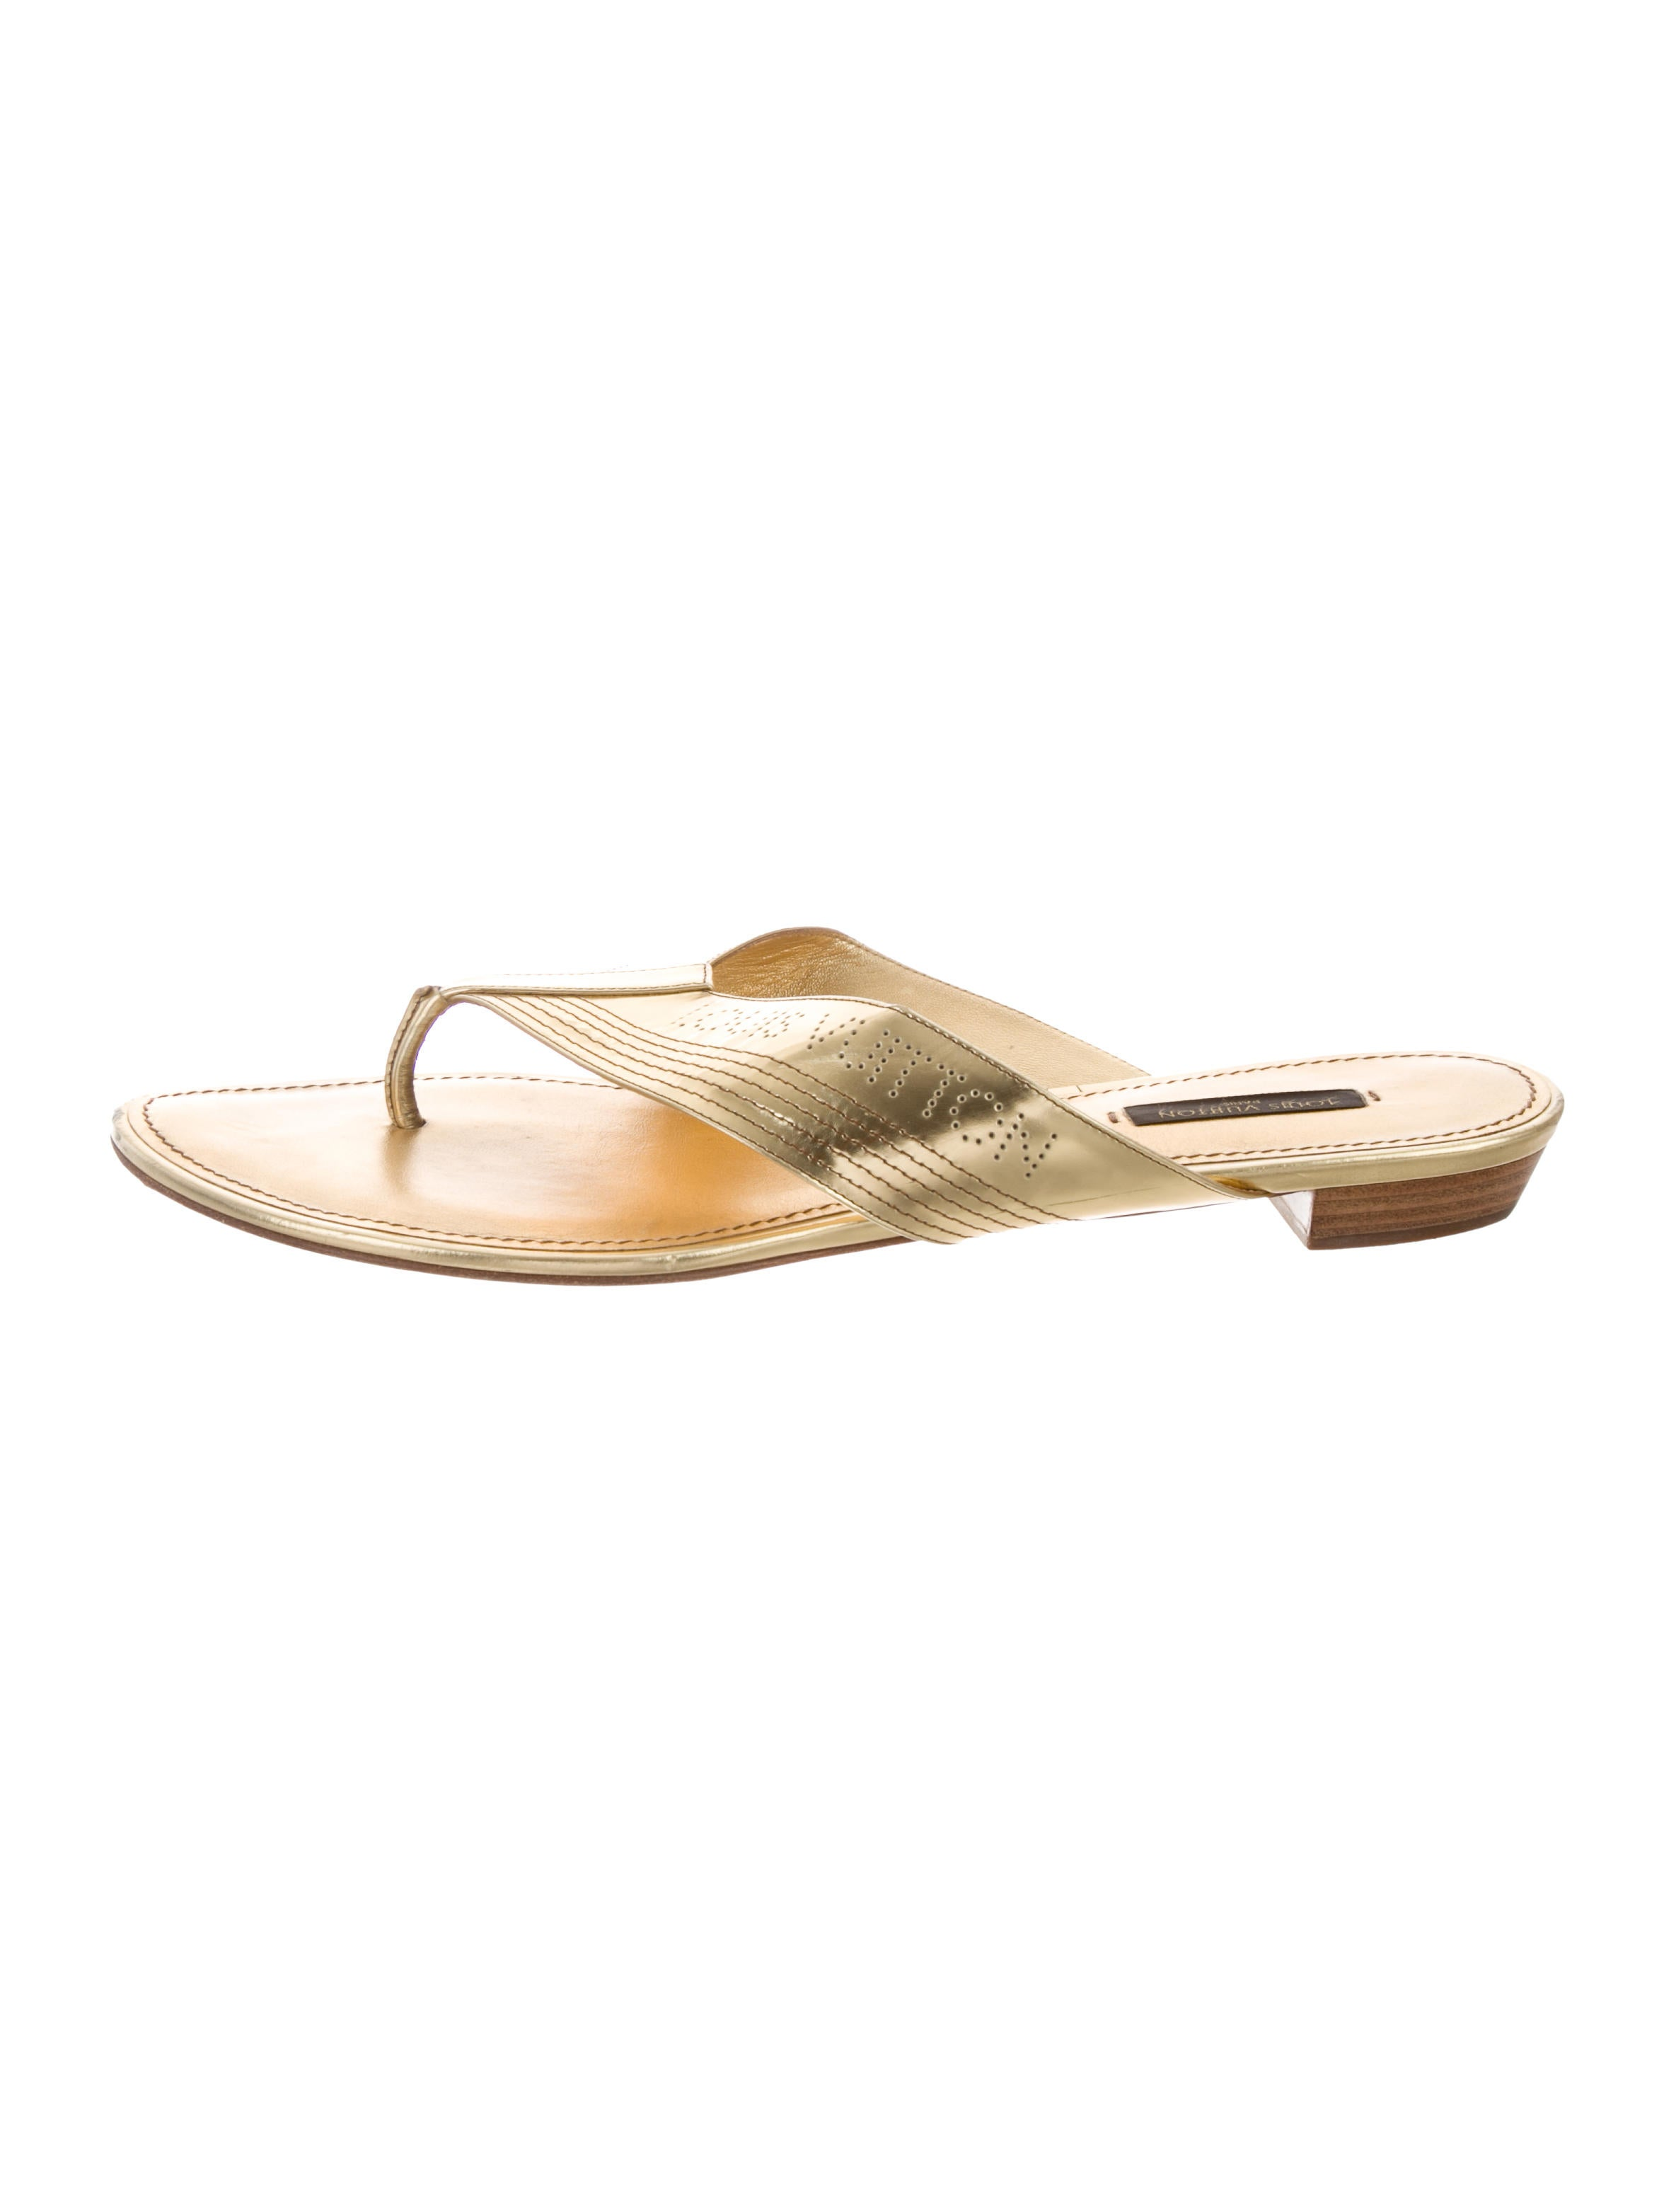 4c078f0e80b0 Louis Vuitton Metallic Thong Sandals - Shoes - LOU198011